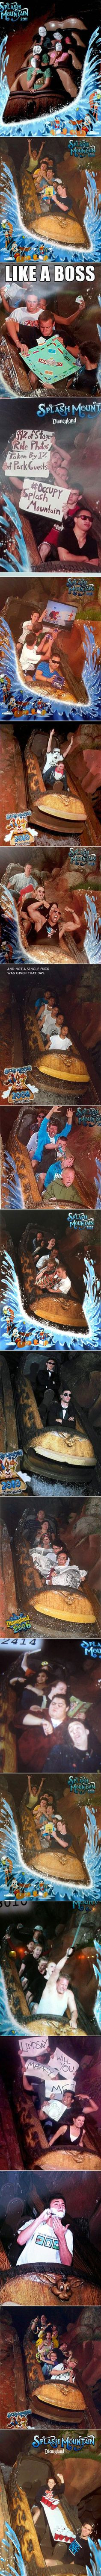 We have rounded up some funny Splash Mountain photos that were cleverly planned.